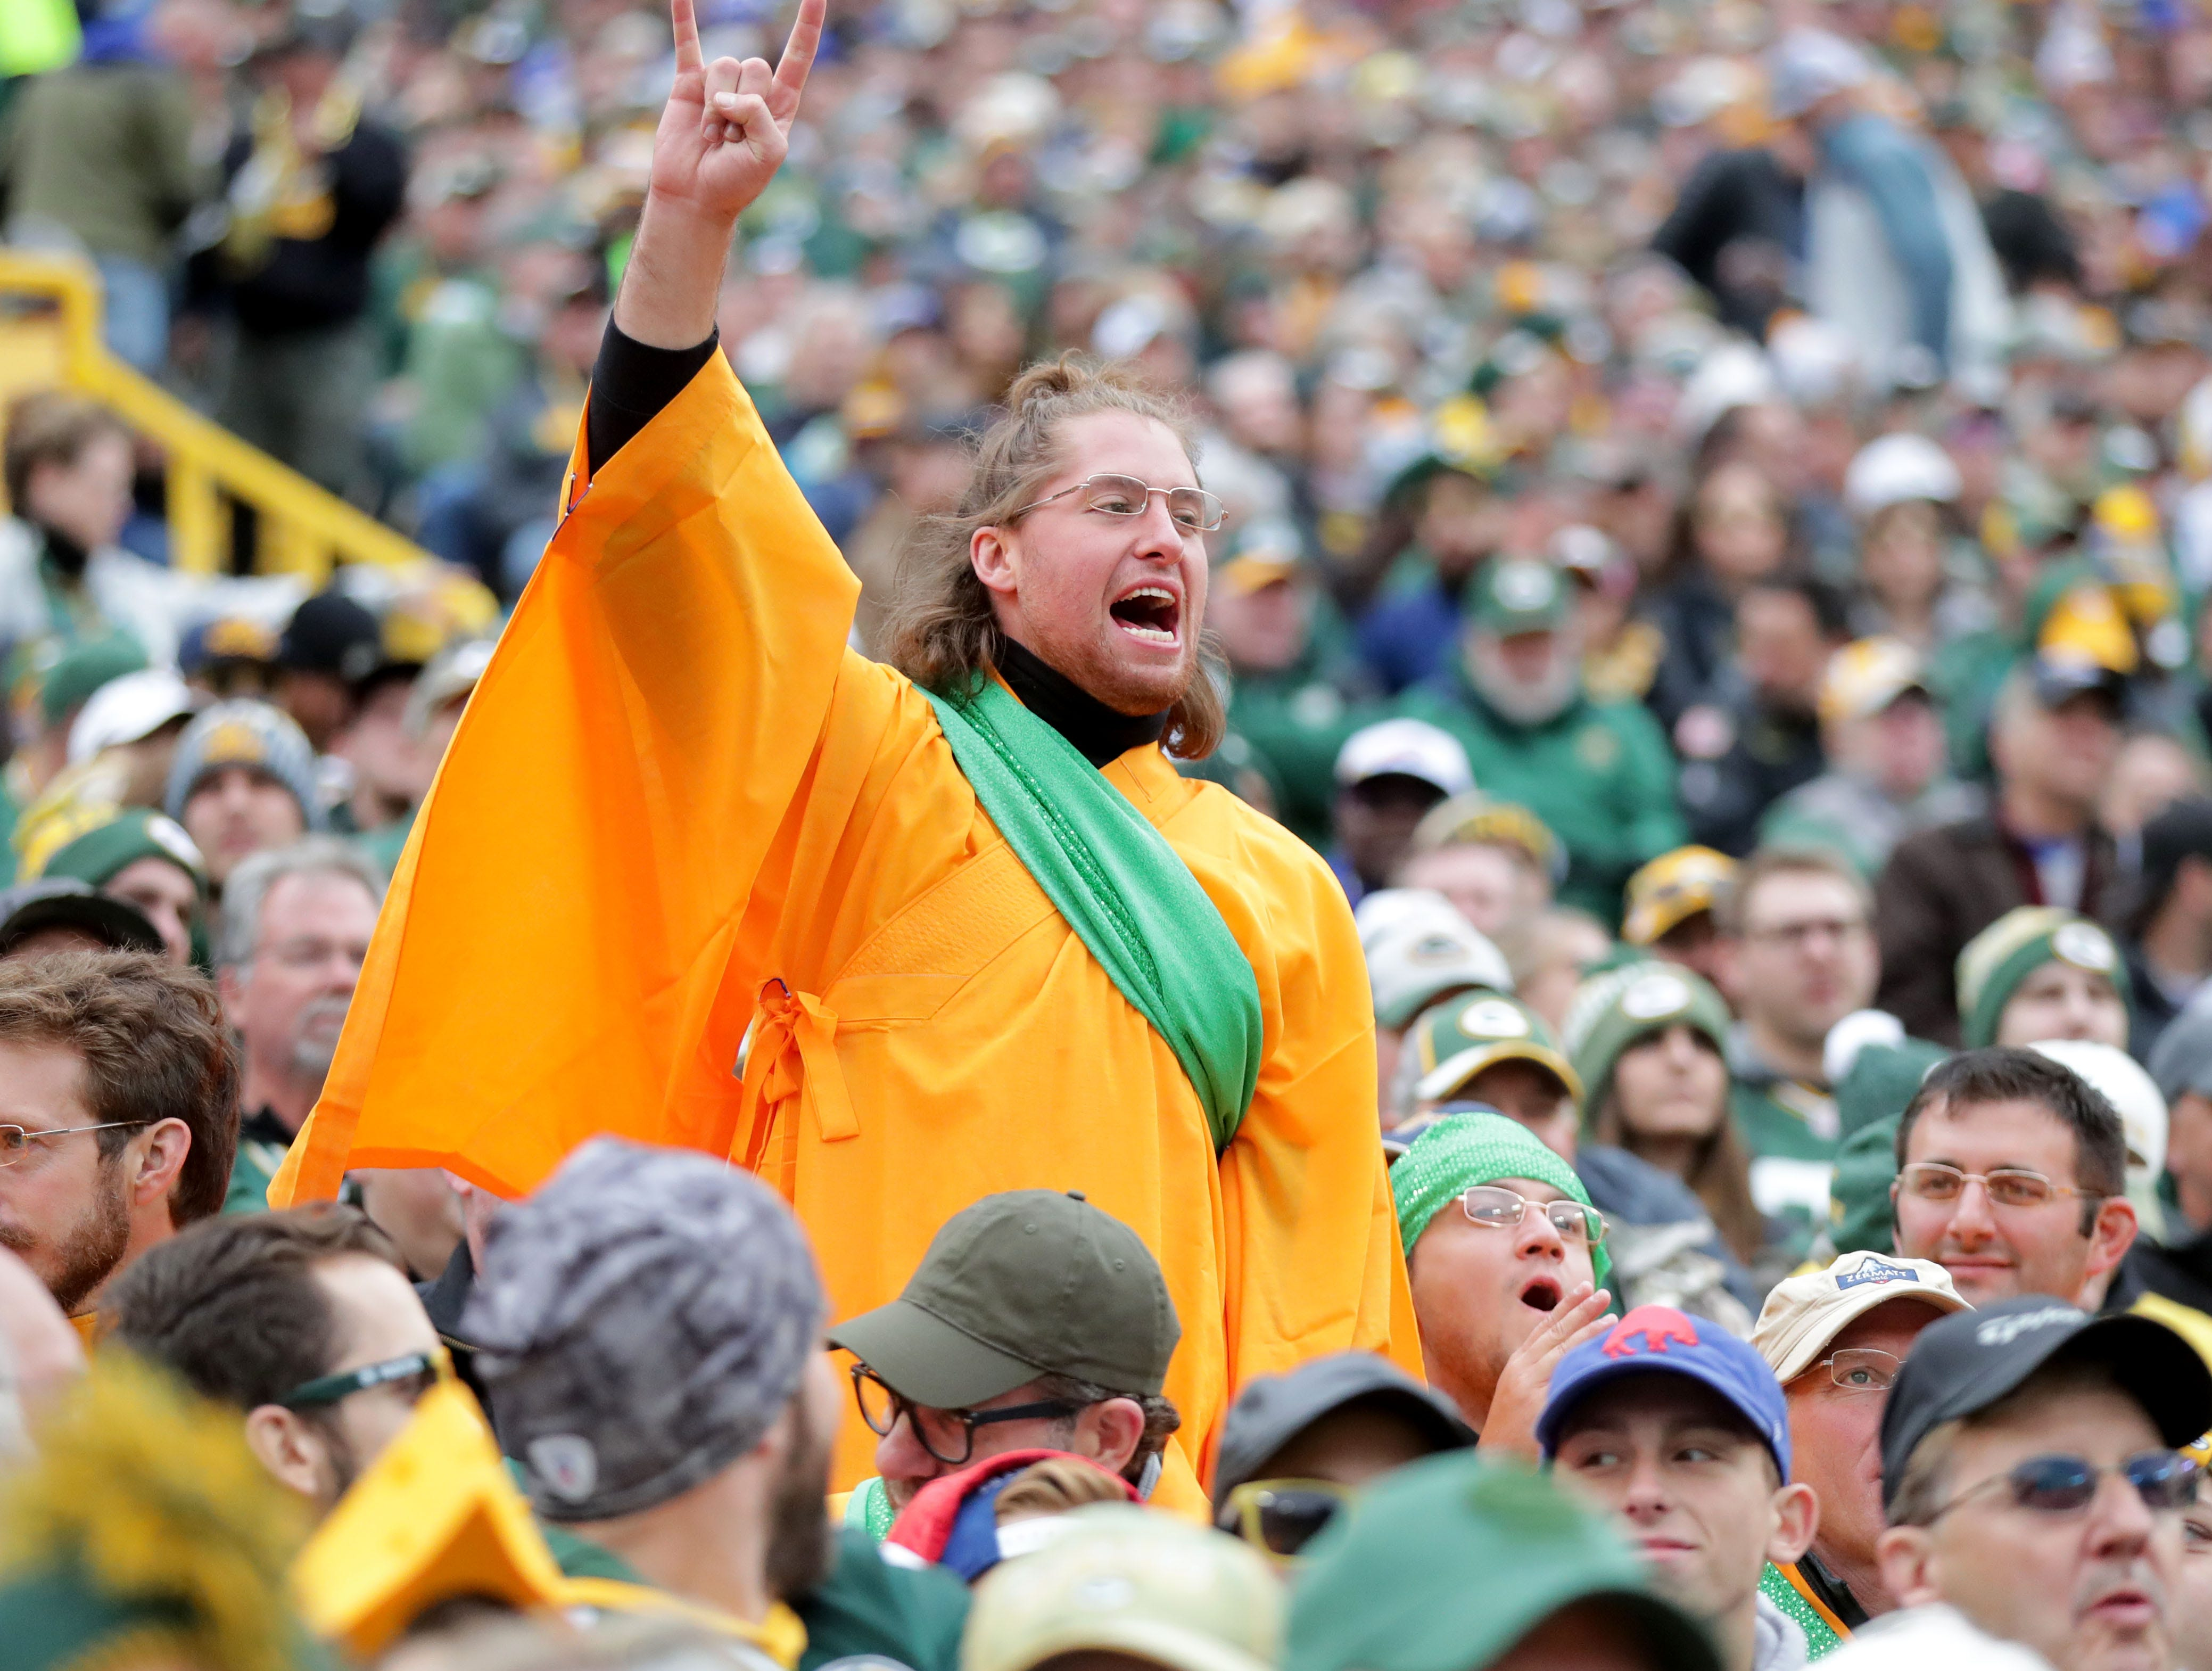 A fan dressed as a monk in honor of the Dalai Lama cheers in the crowd since Aaron Rodgers made a trip to India to meet the  Dalai Lama in April of this year. This was during the first quarter of the Green Bay Packers game against the Buffalo Bills at Lambeau Field in Green Bay, Wis. on Sunday, September 30, 2018. Mike De Sisti /USA TODAY NETWORK-Wisconsin